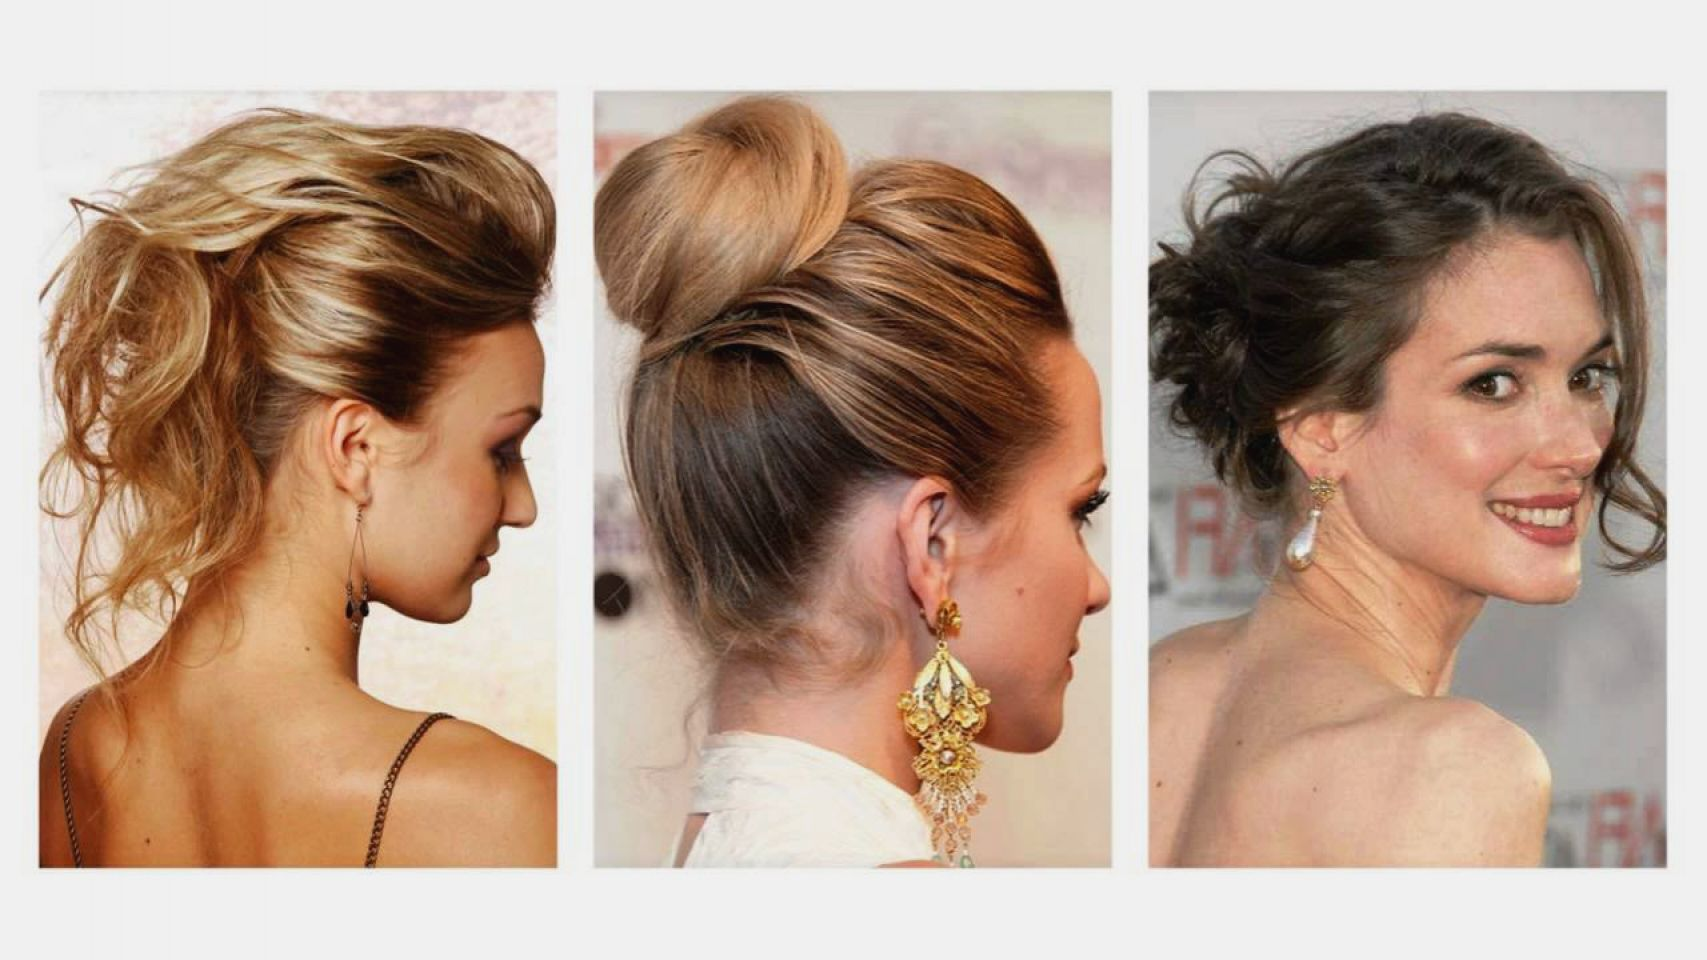 Cute hairstyles hairstyles for long hair youtube medium length hair cute hairstyles hairstyles for long hair youtube medium length hair youtube hairstyle elegant hairstyles hairstyles solutioingenieria Image collections